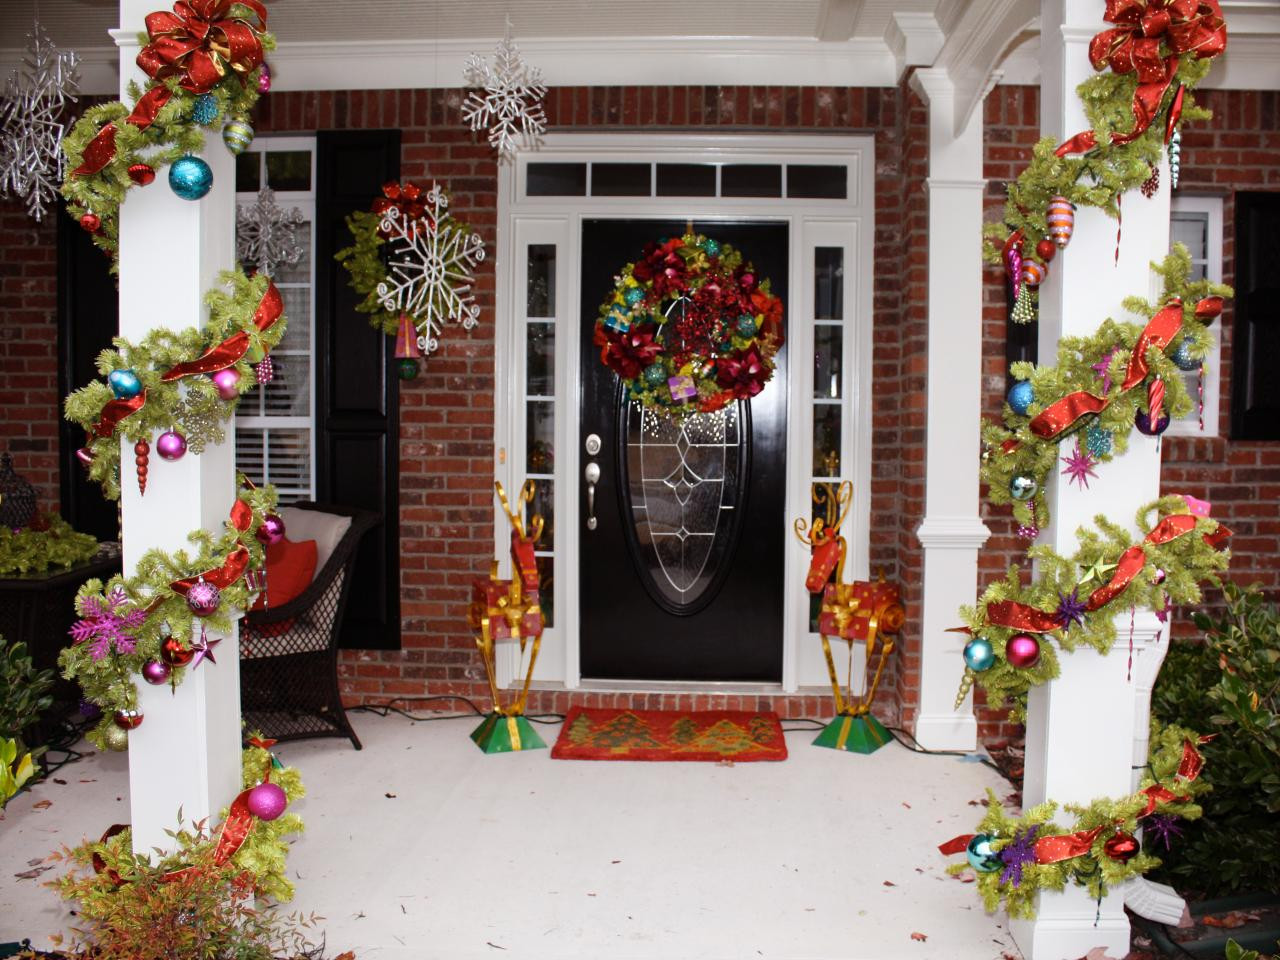 Porch Decor For Christmas  Awesome Enrtry Way With Front Porch Christmas Decorations